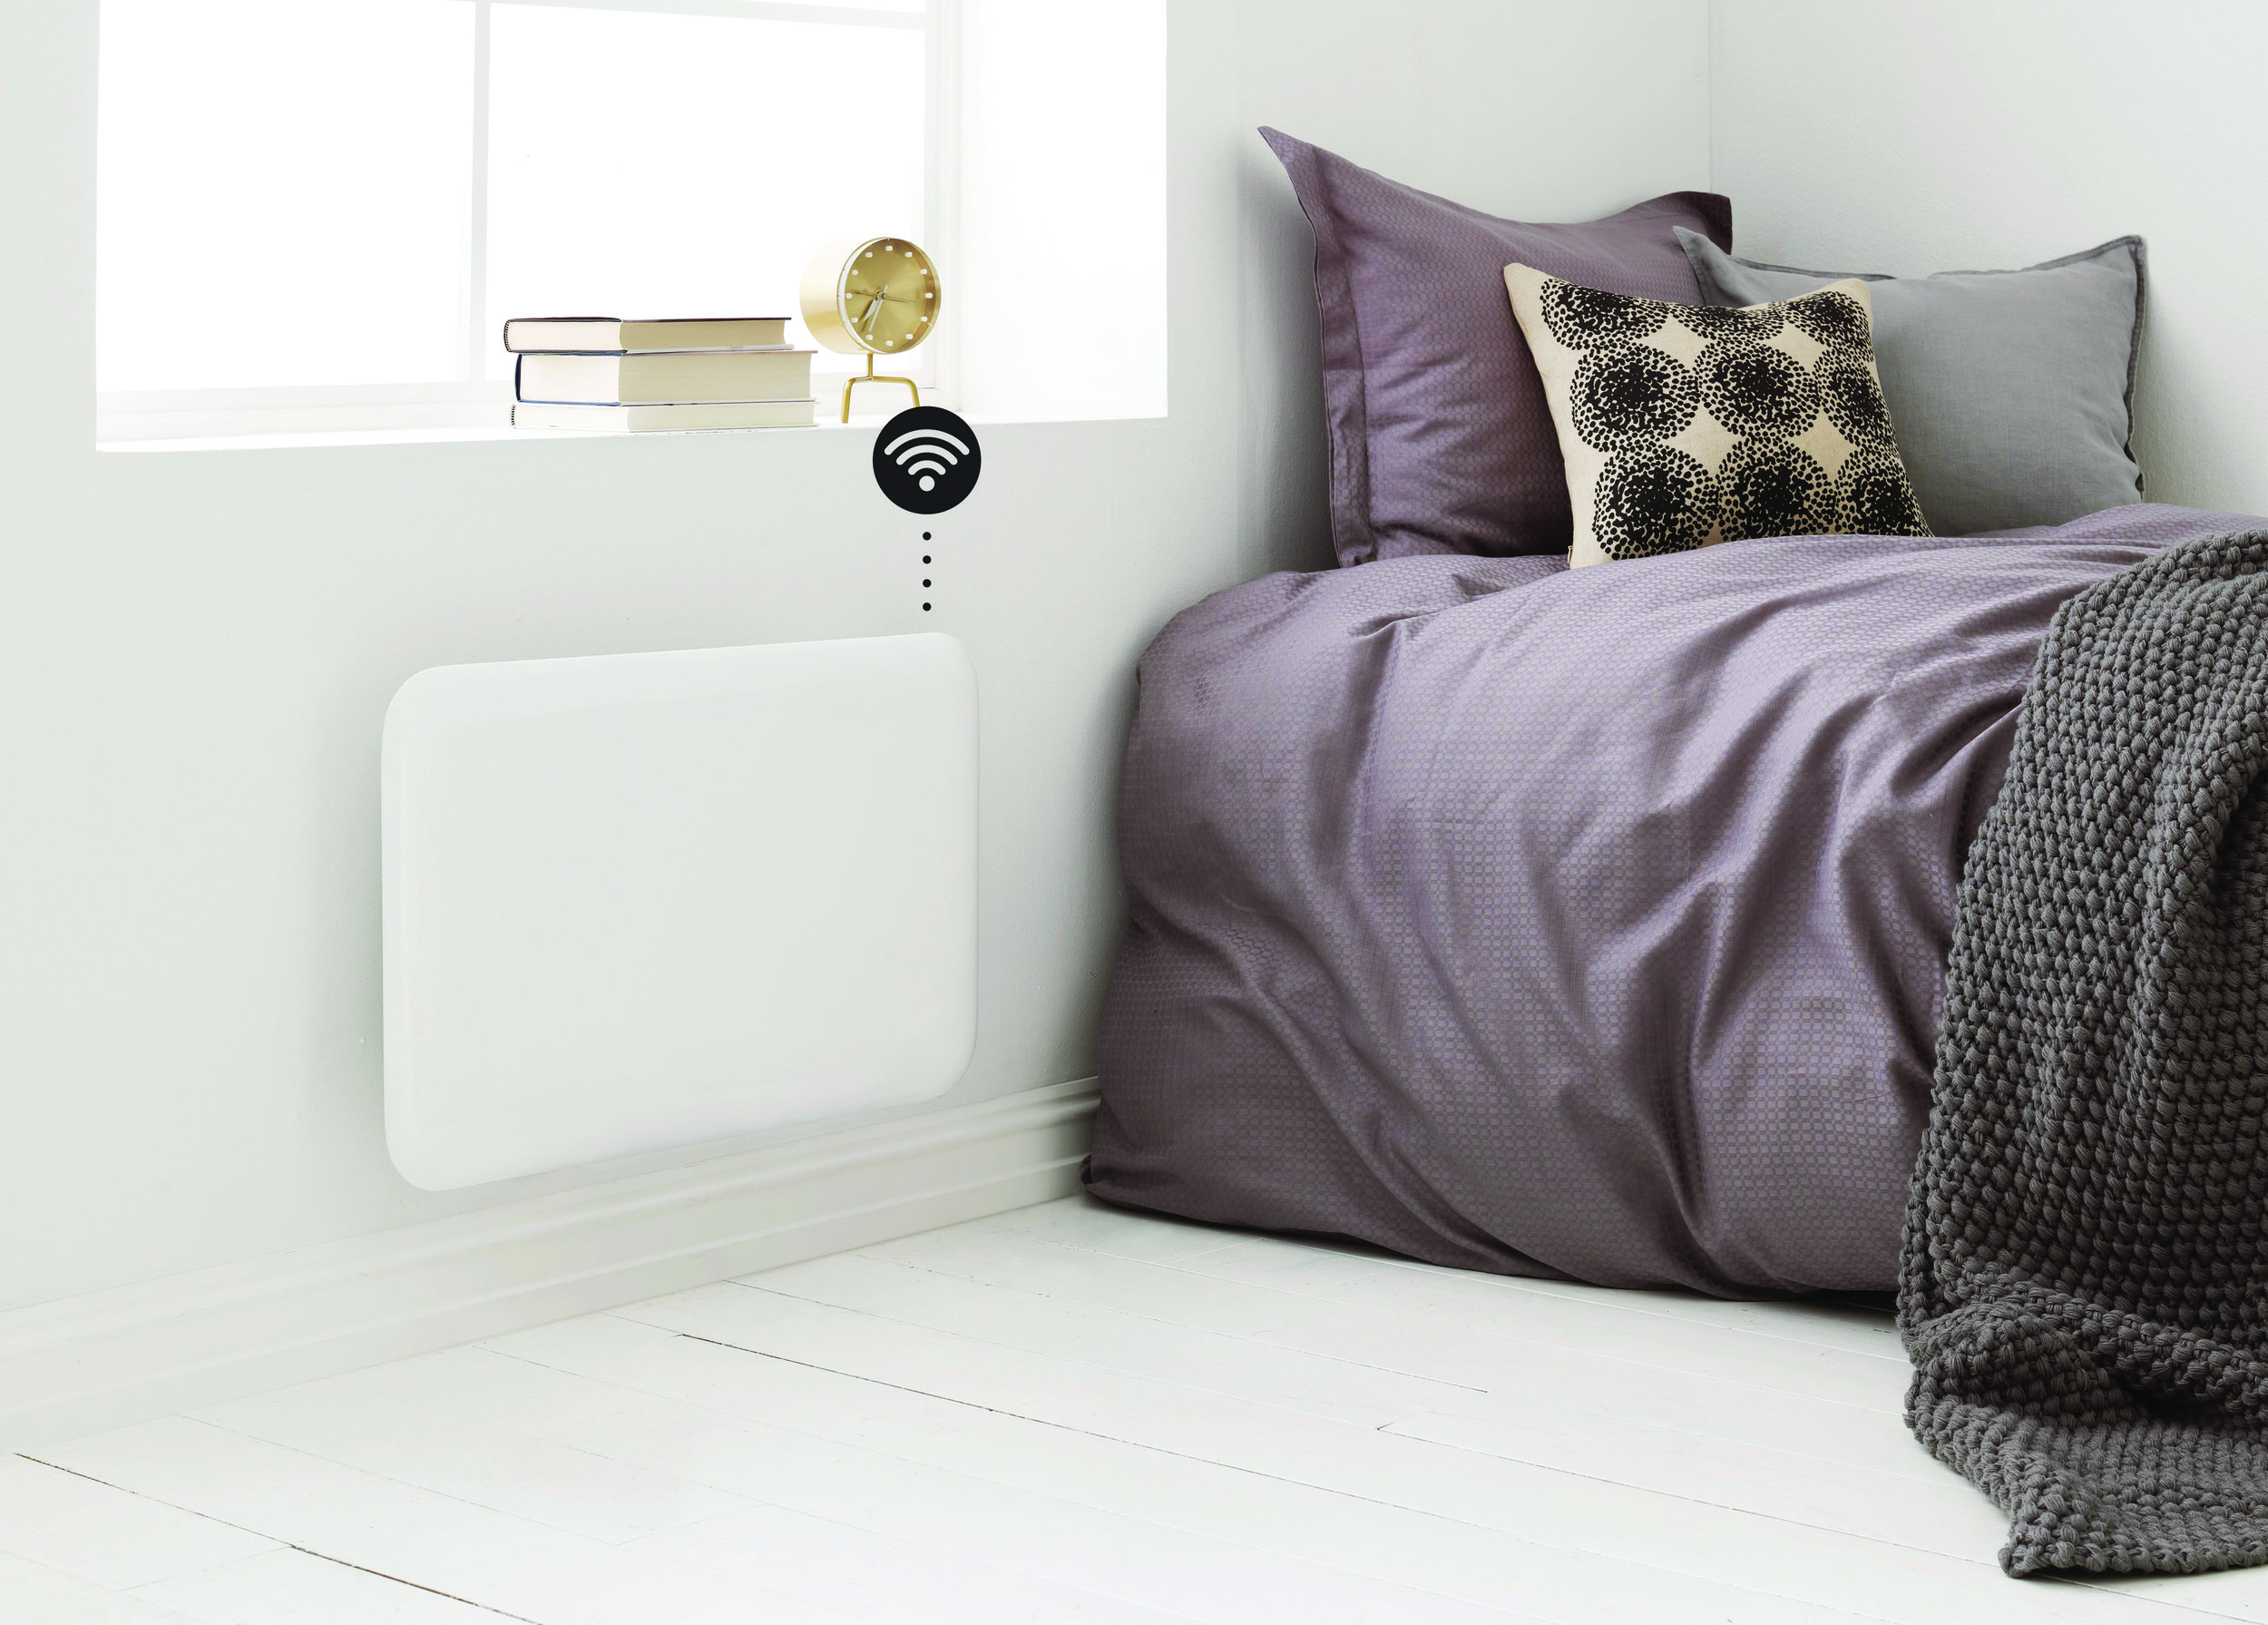 Mill heater in the bedroom